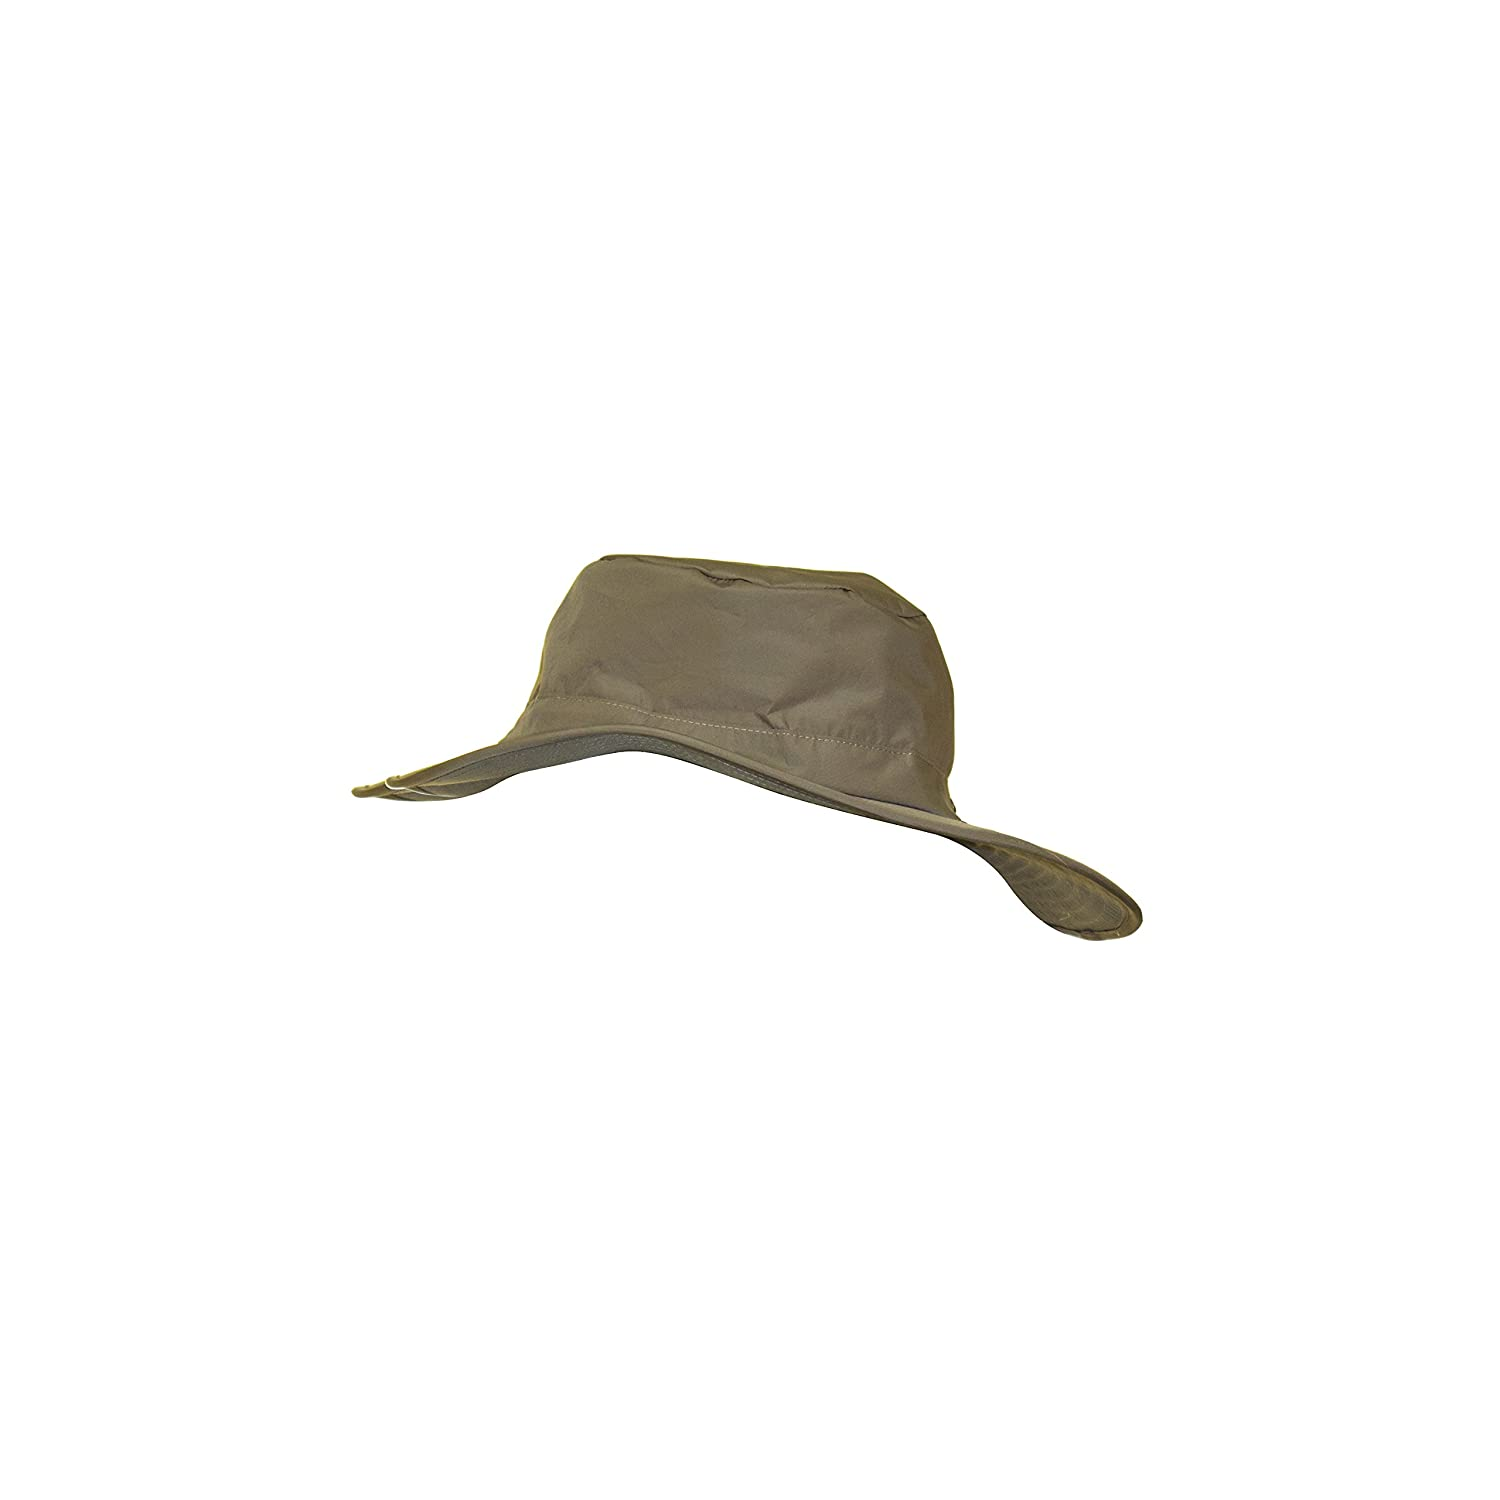 625cbc3213a691 Frogg Toggs Waterproof Breathable Bucket Hat, Stone, Adjustable: Amazon.ca:  Sports & Outdoors